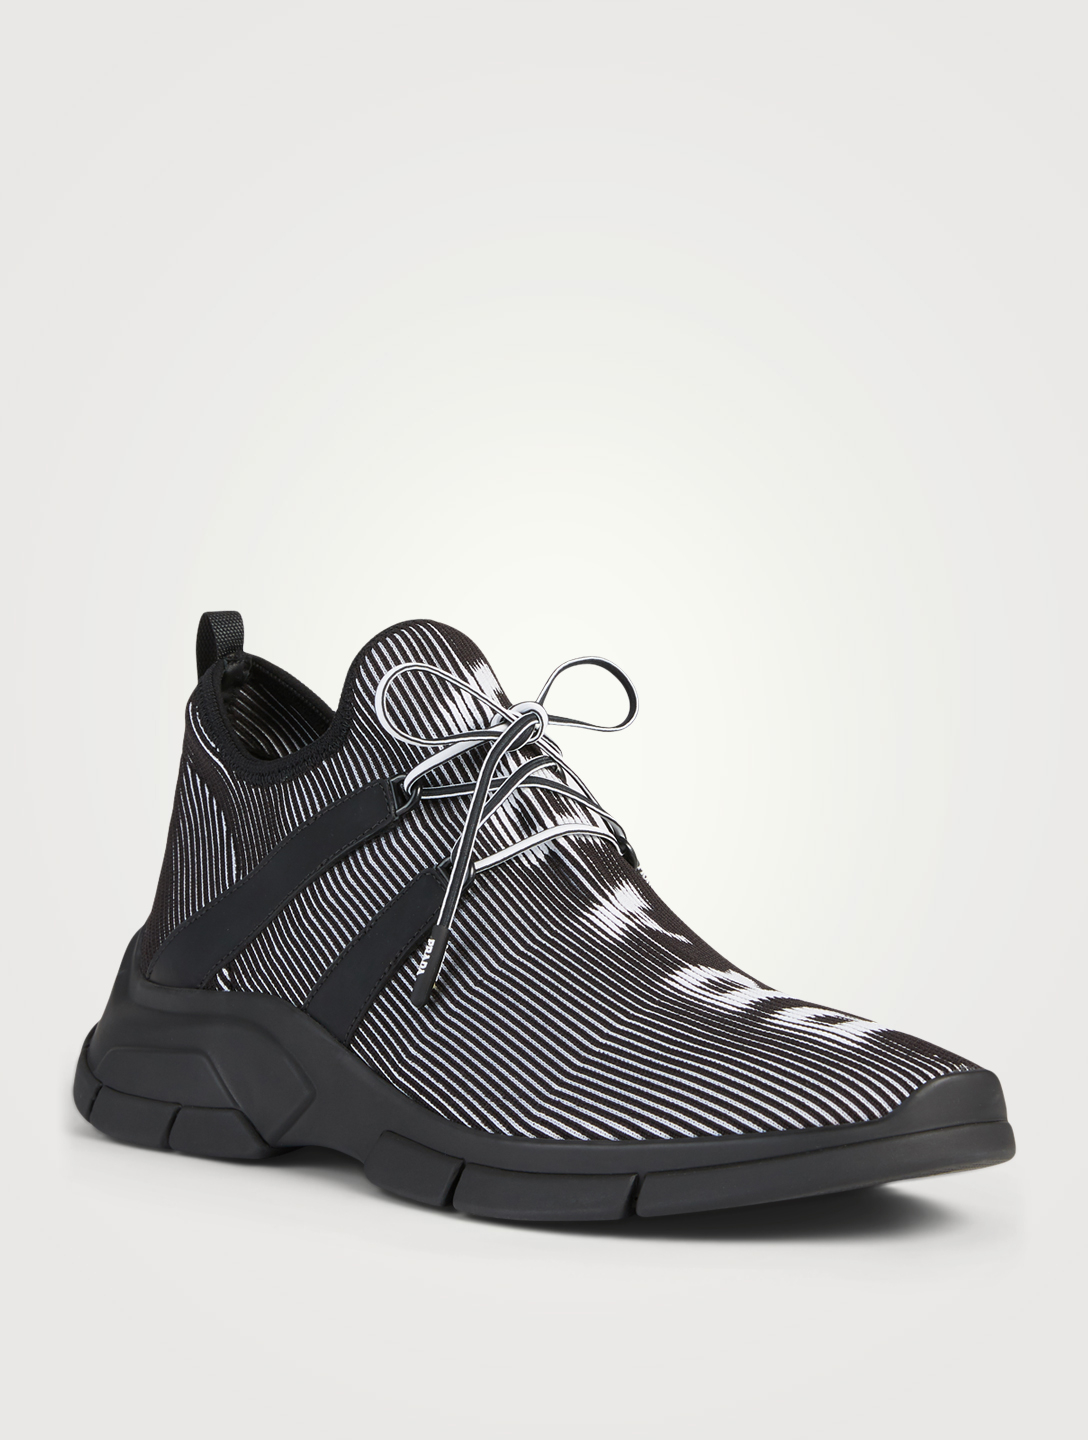 PRADA XY Hologram Knit Logo Sneakers Men's Black